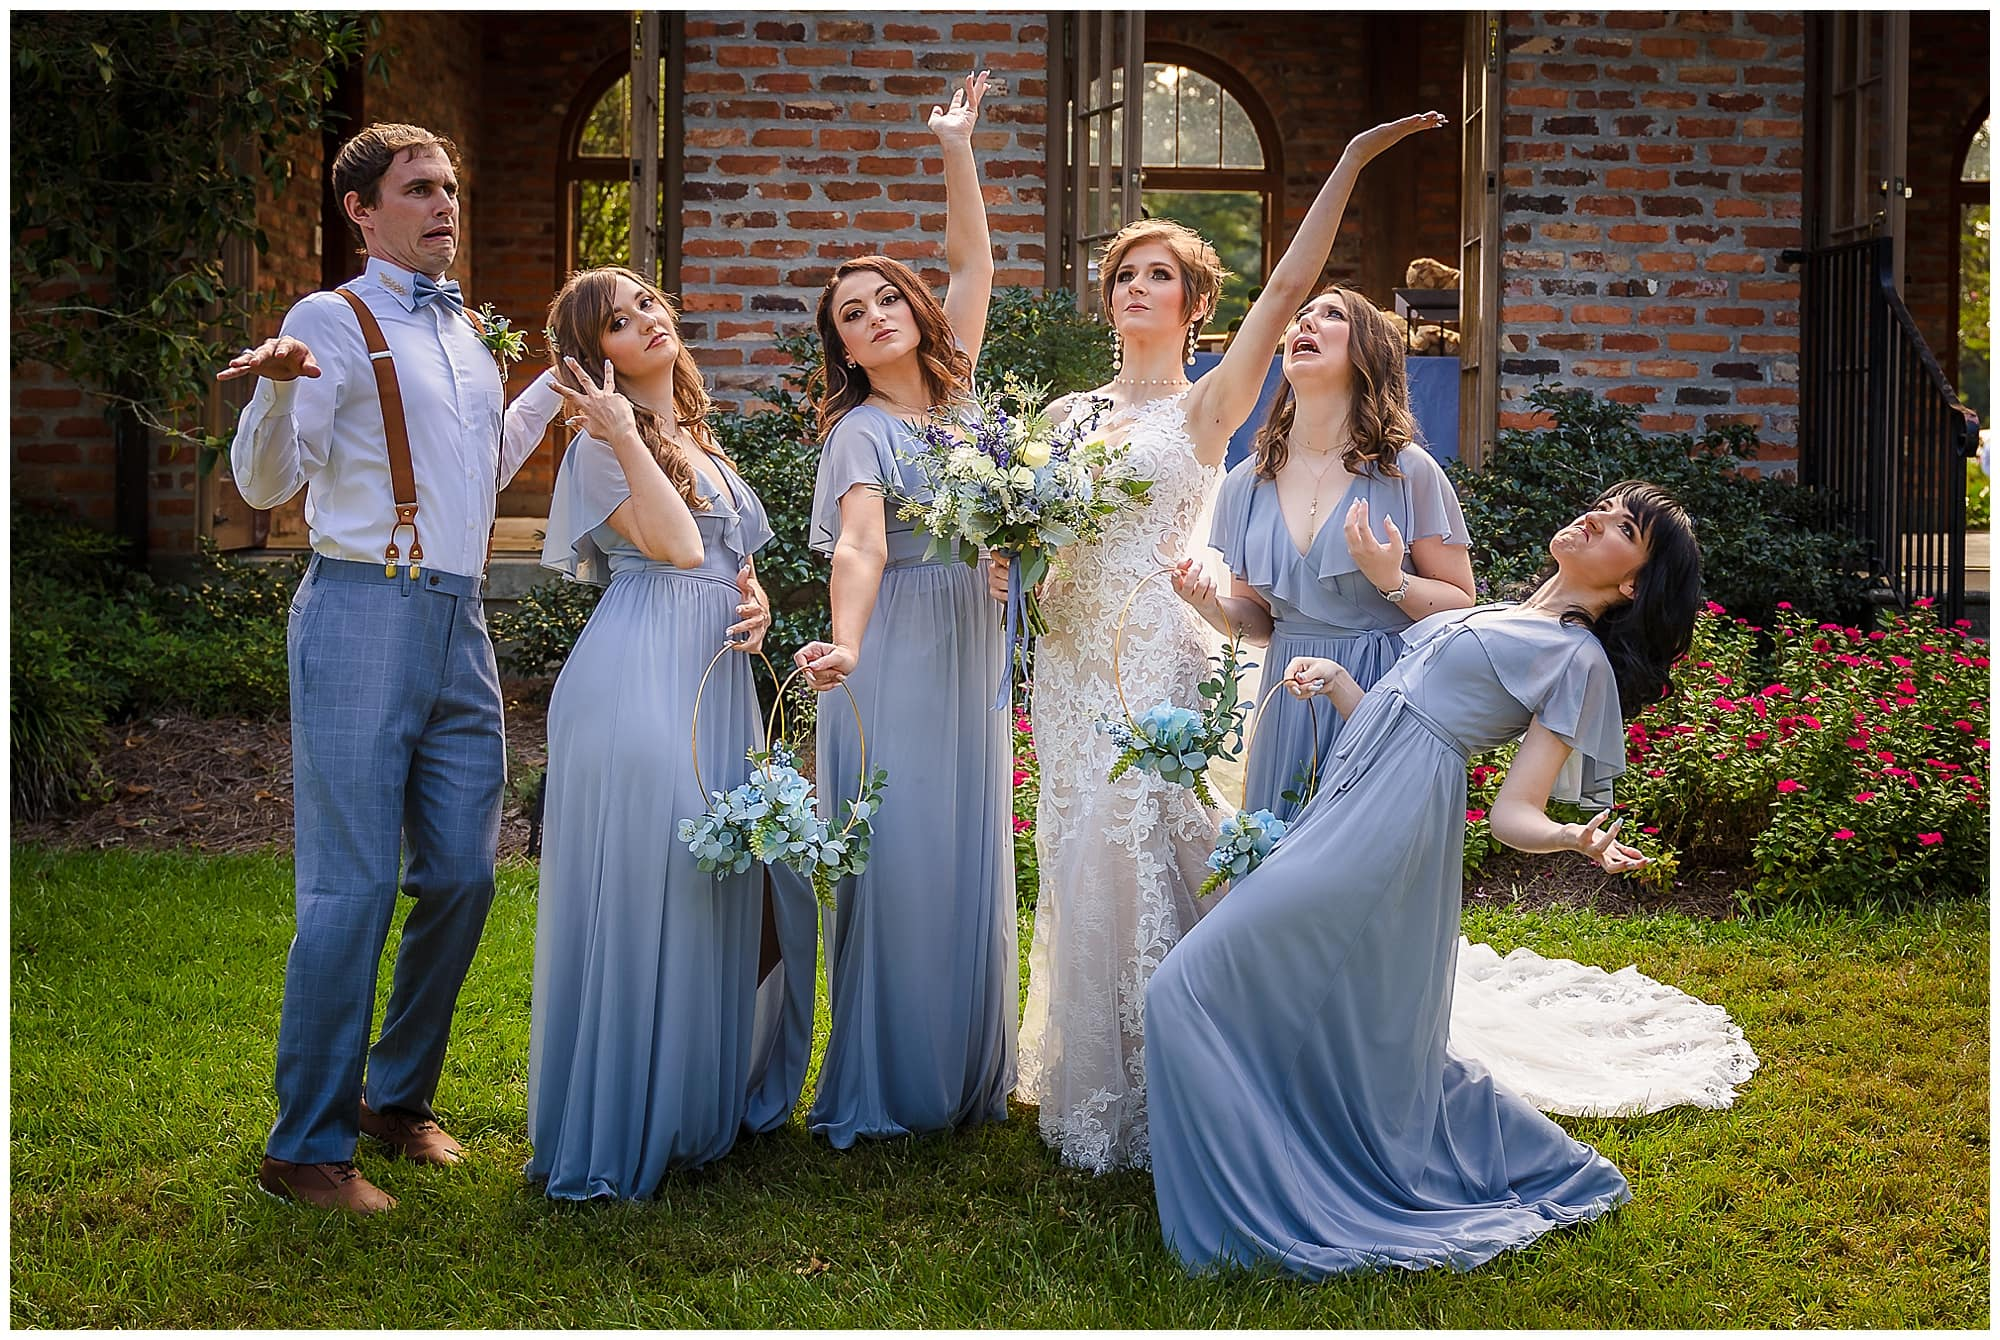 bridal party acting silly Orangerie wedding in Baton Rouge